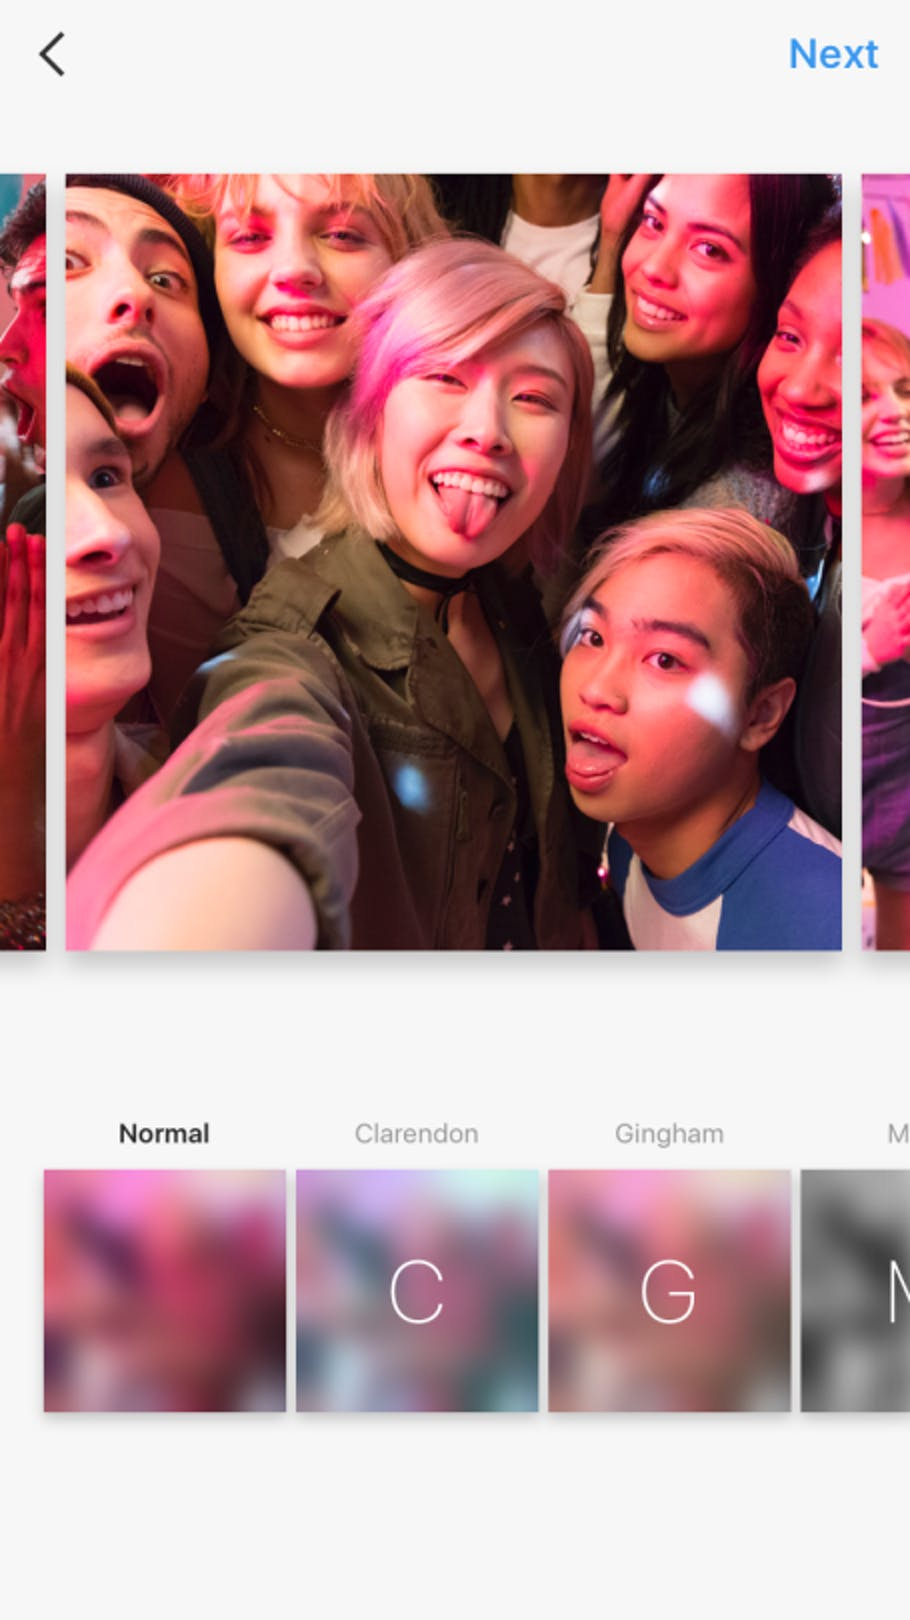 Instagram's new slideshow feature allows users to post 10 pictures at a time.